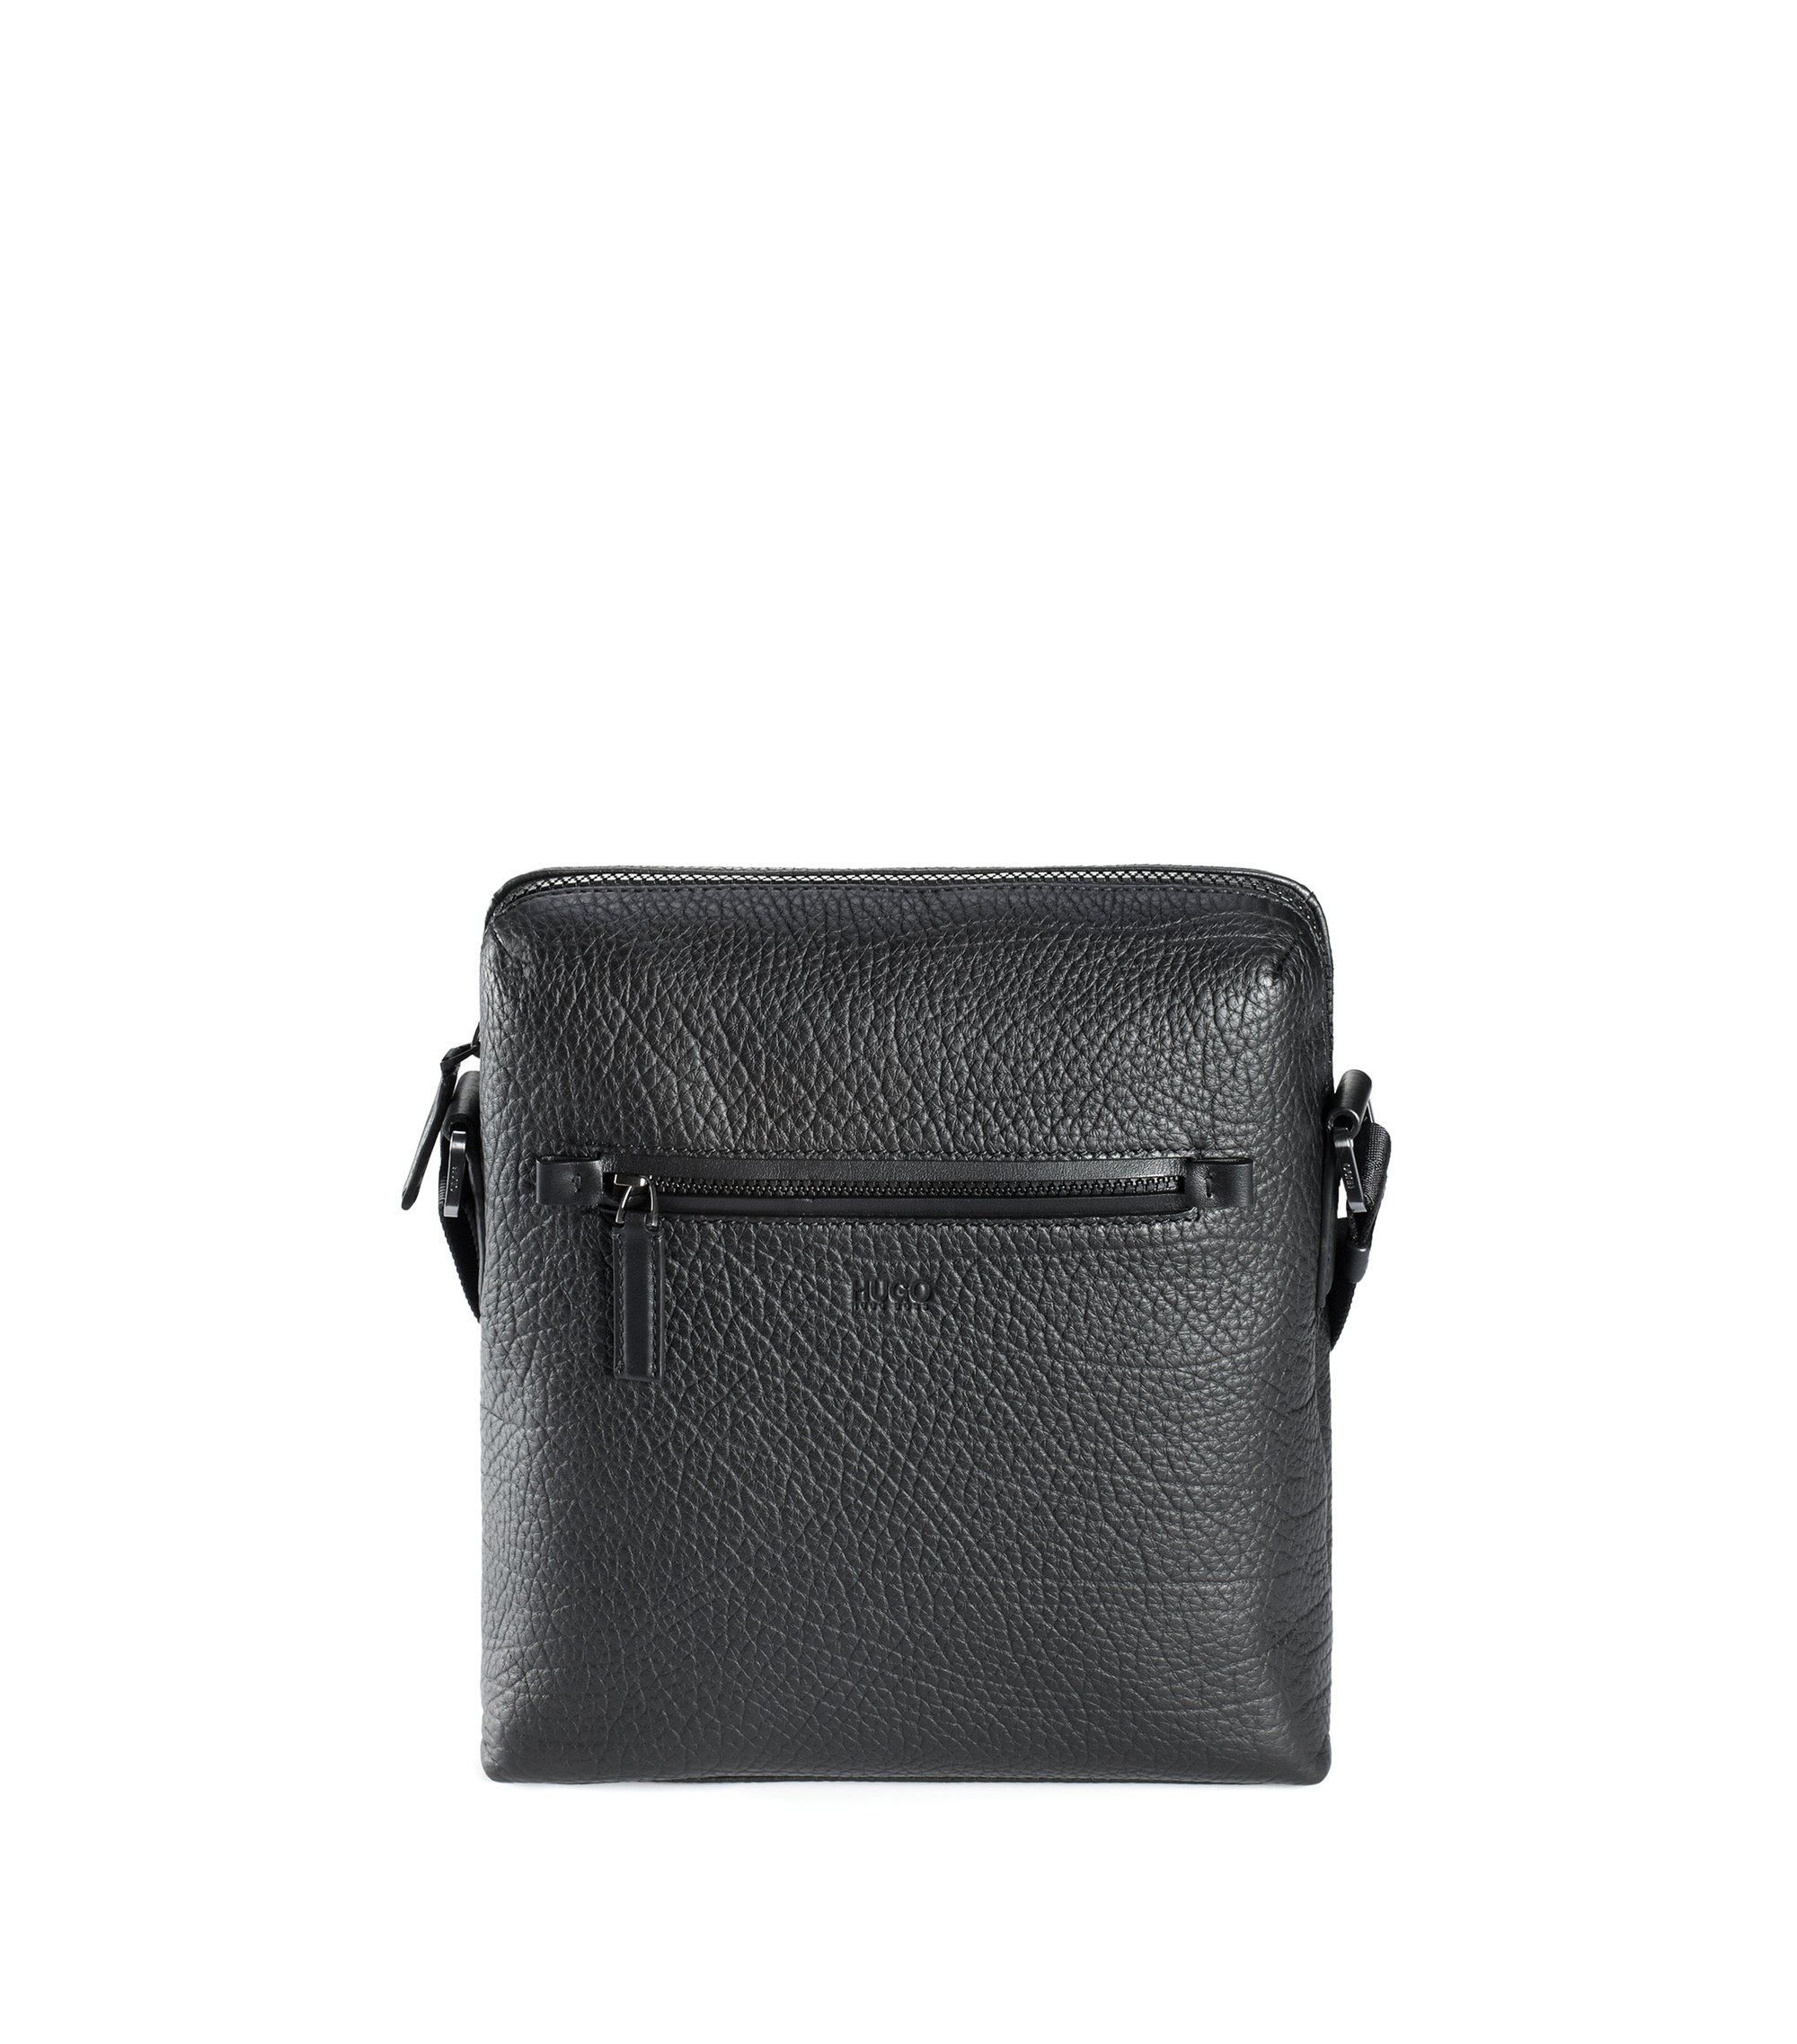 Reporter bag in grained Italian leather, Noir